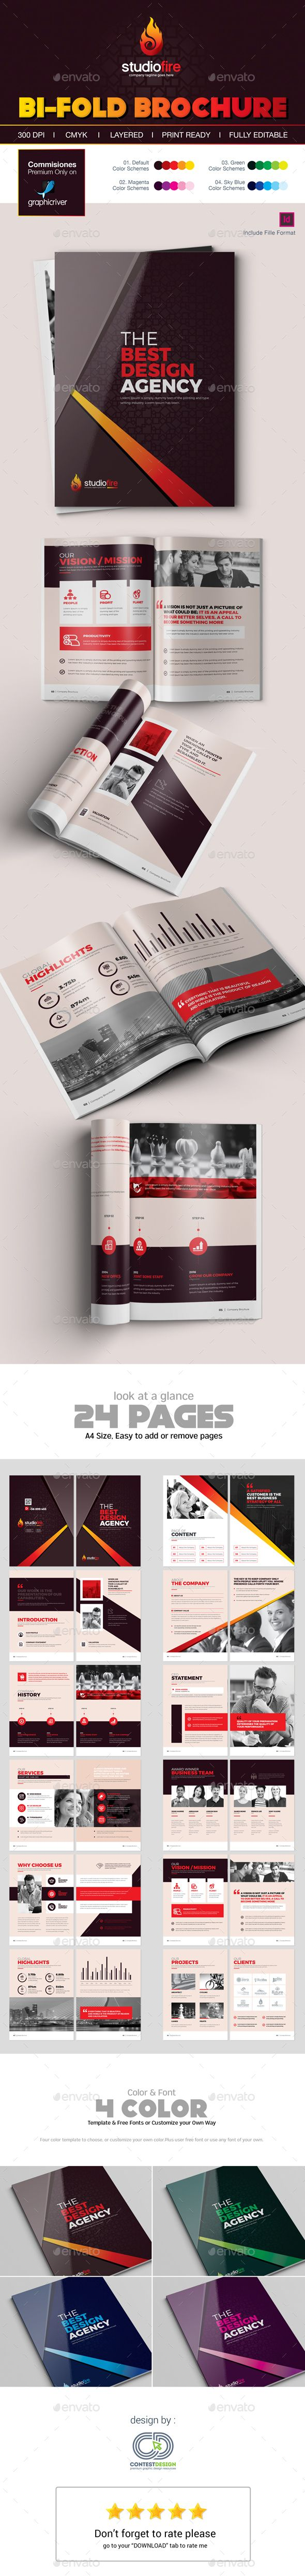 24 Pages Professional Brochure Design Template InDesign INDD